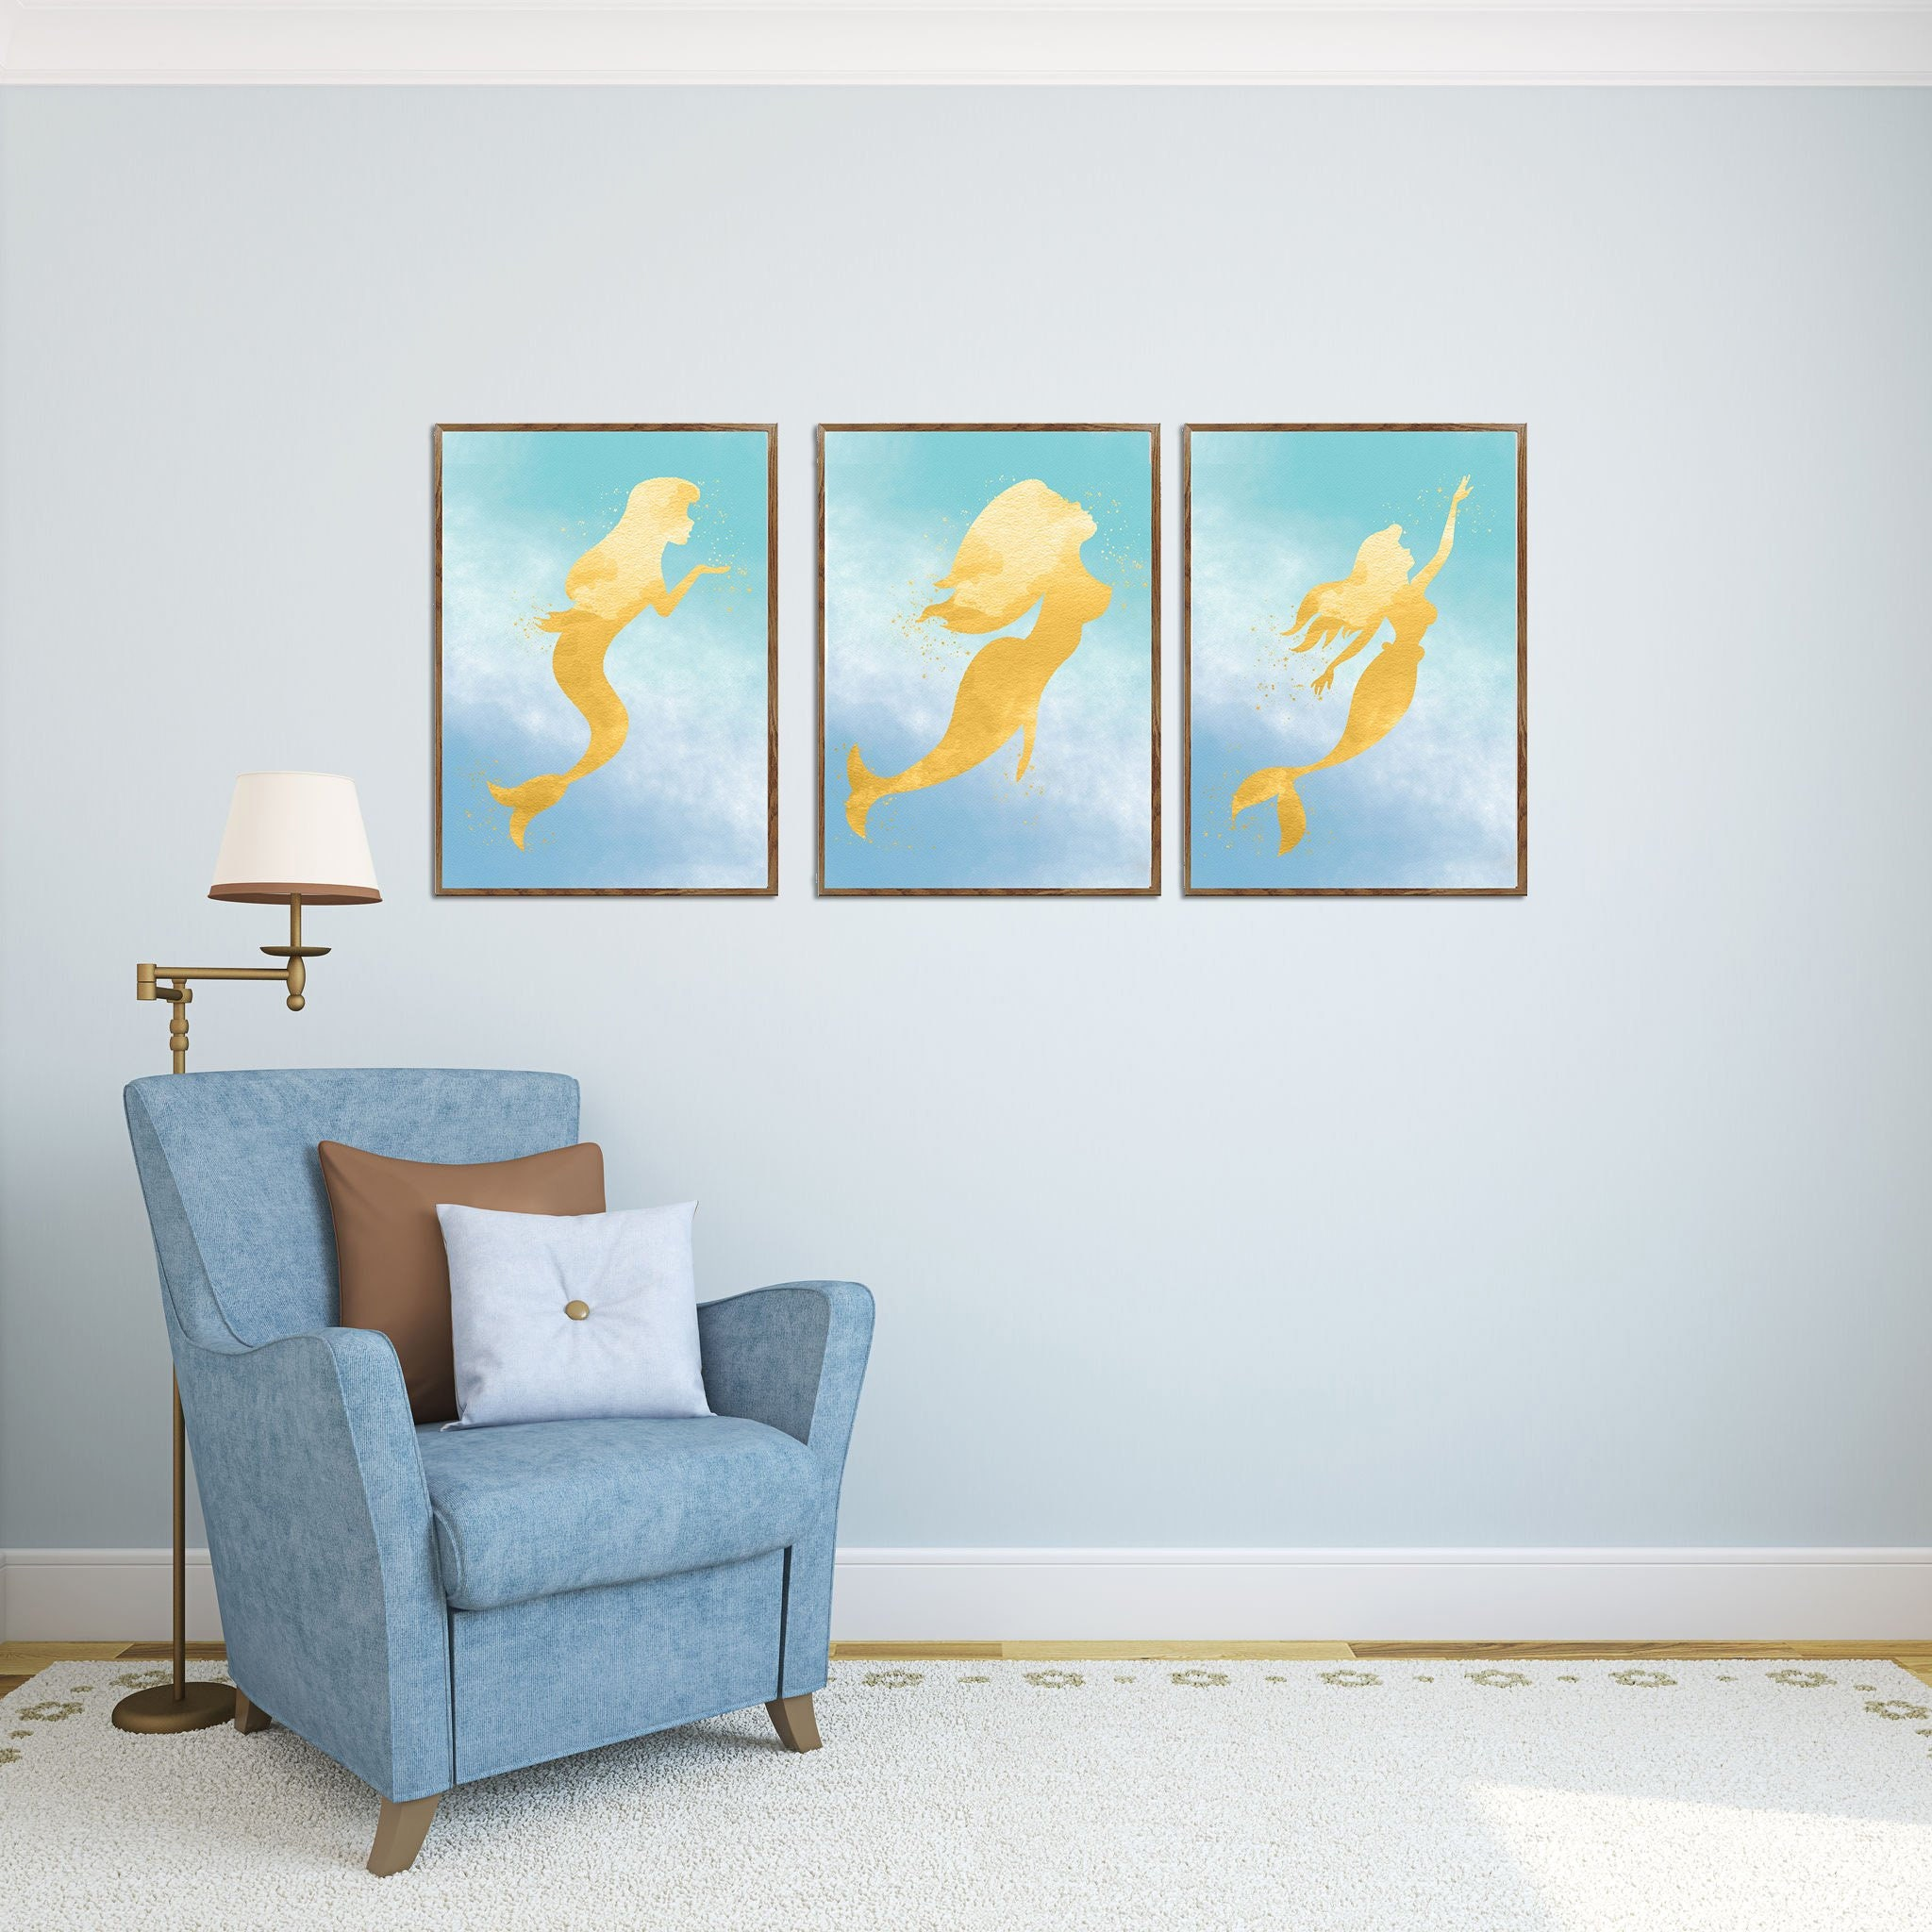 Mermaid Decor 3 Piece Art Print Girls Room Wall Art Bathroom Art Beach House Decor Watercolor Painting Large Poster Girl Gift Ideas